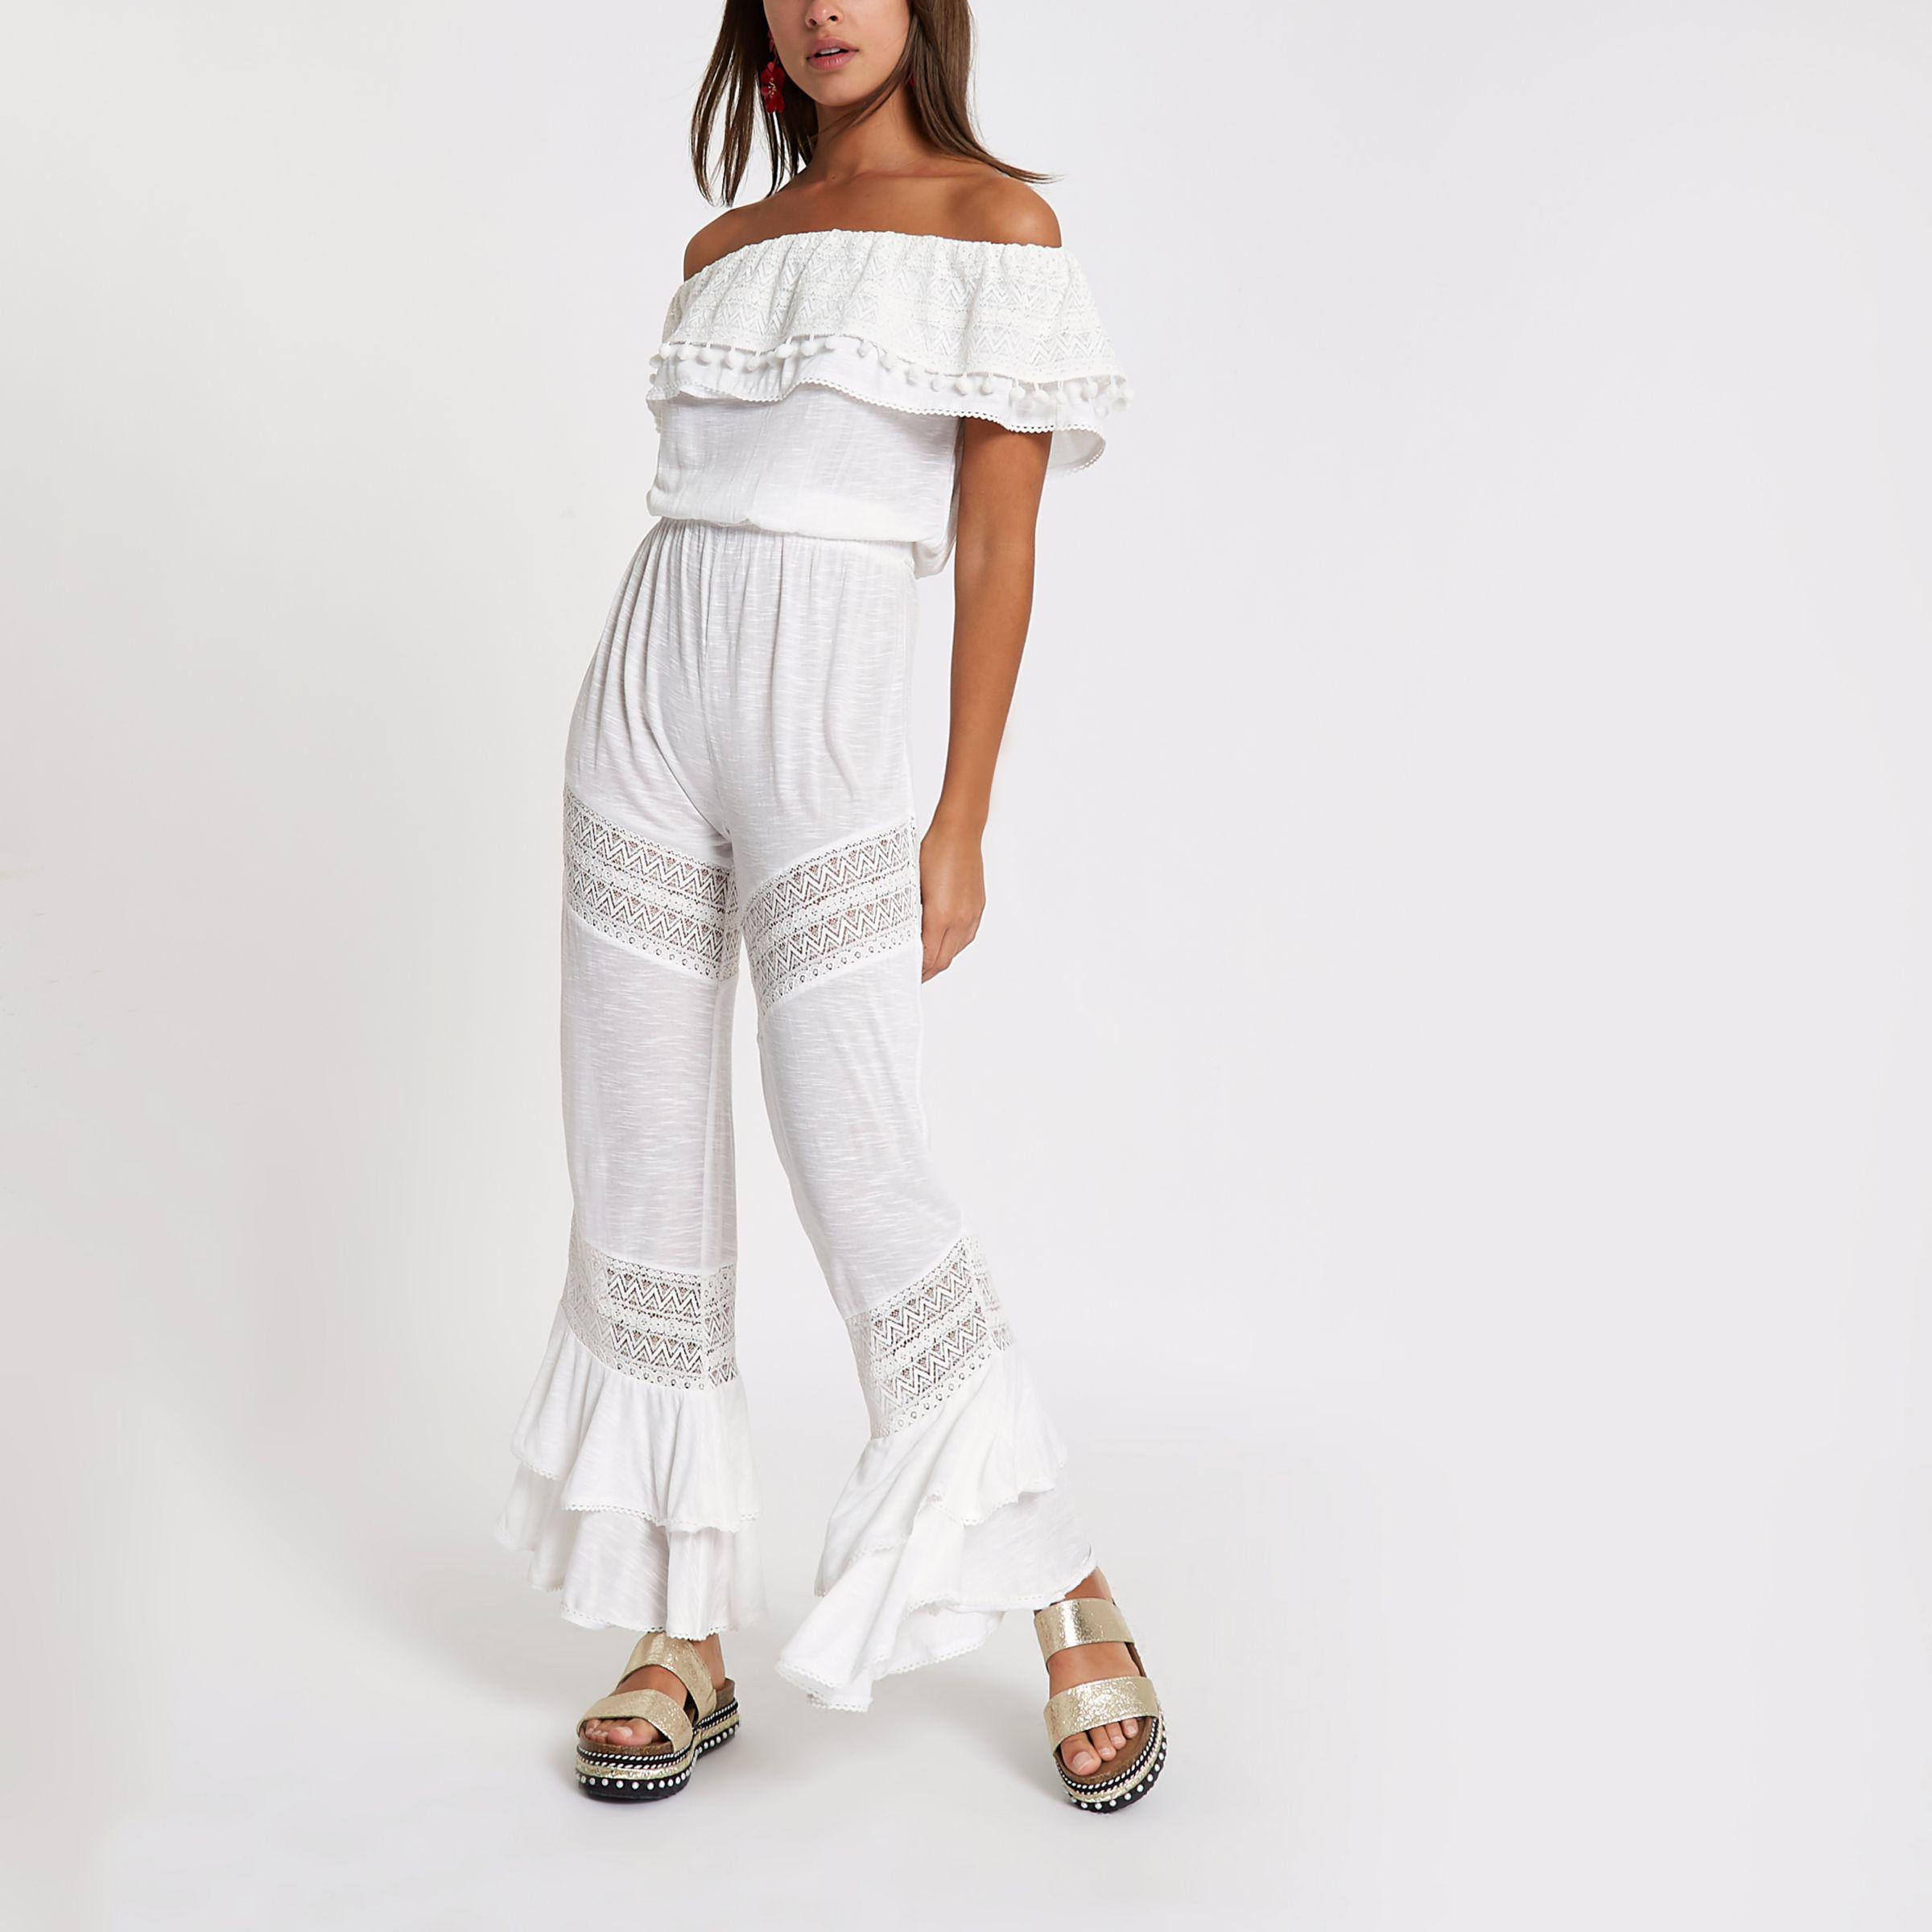 7377f1f024a Lyst - River Island White Jersey Bardot Frill Jumpsuit in White